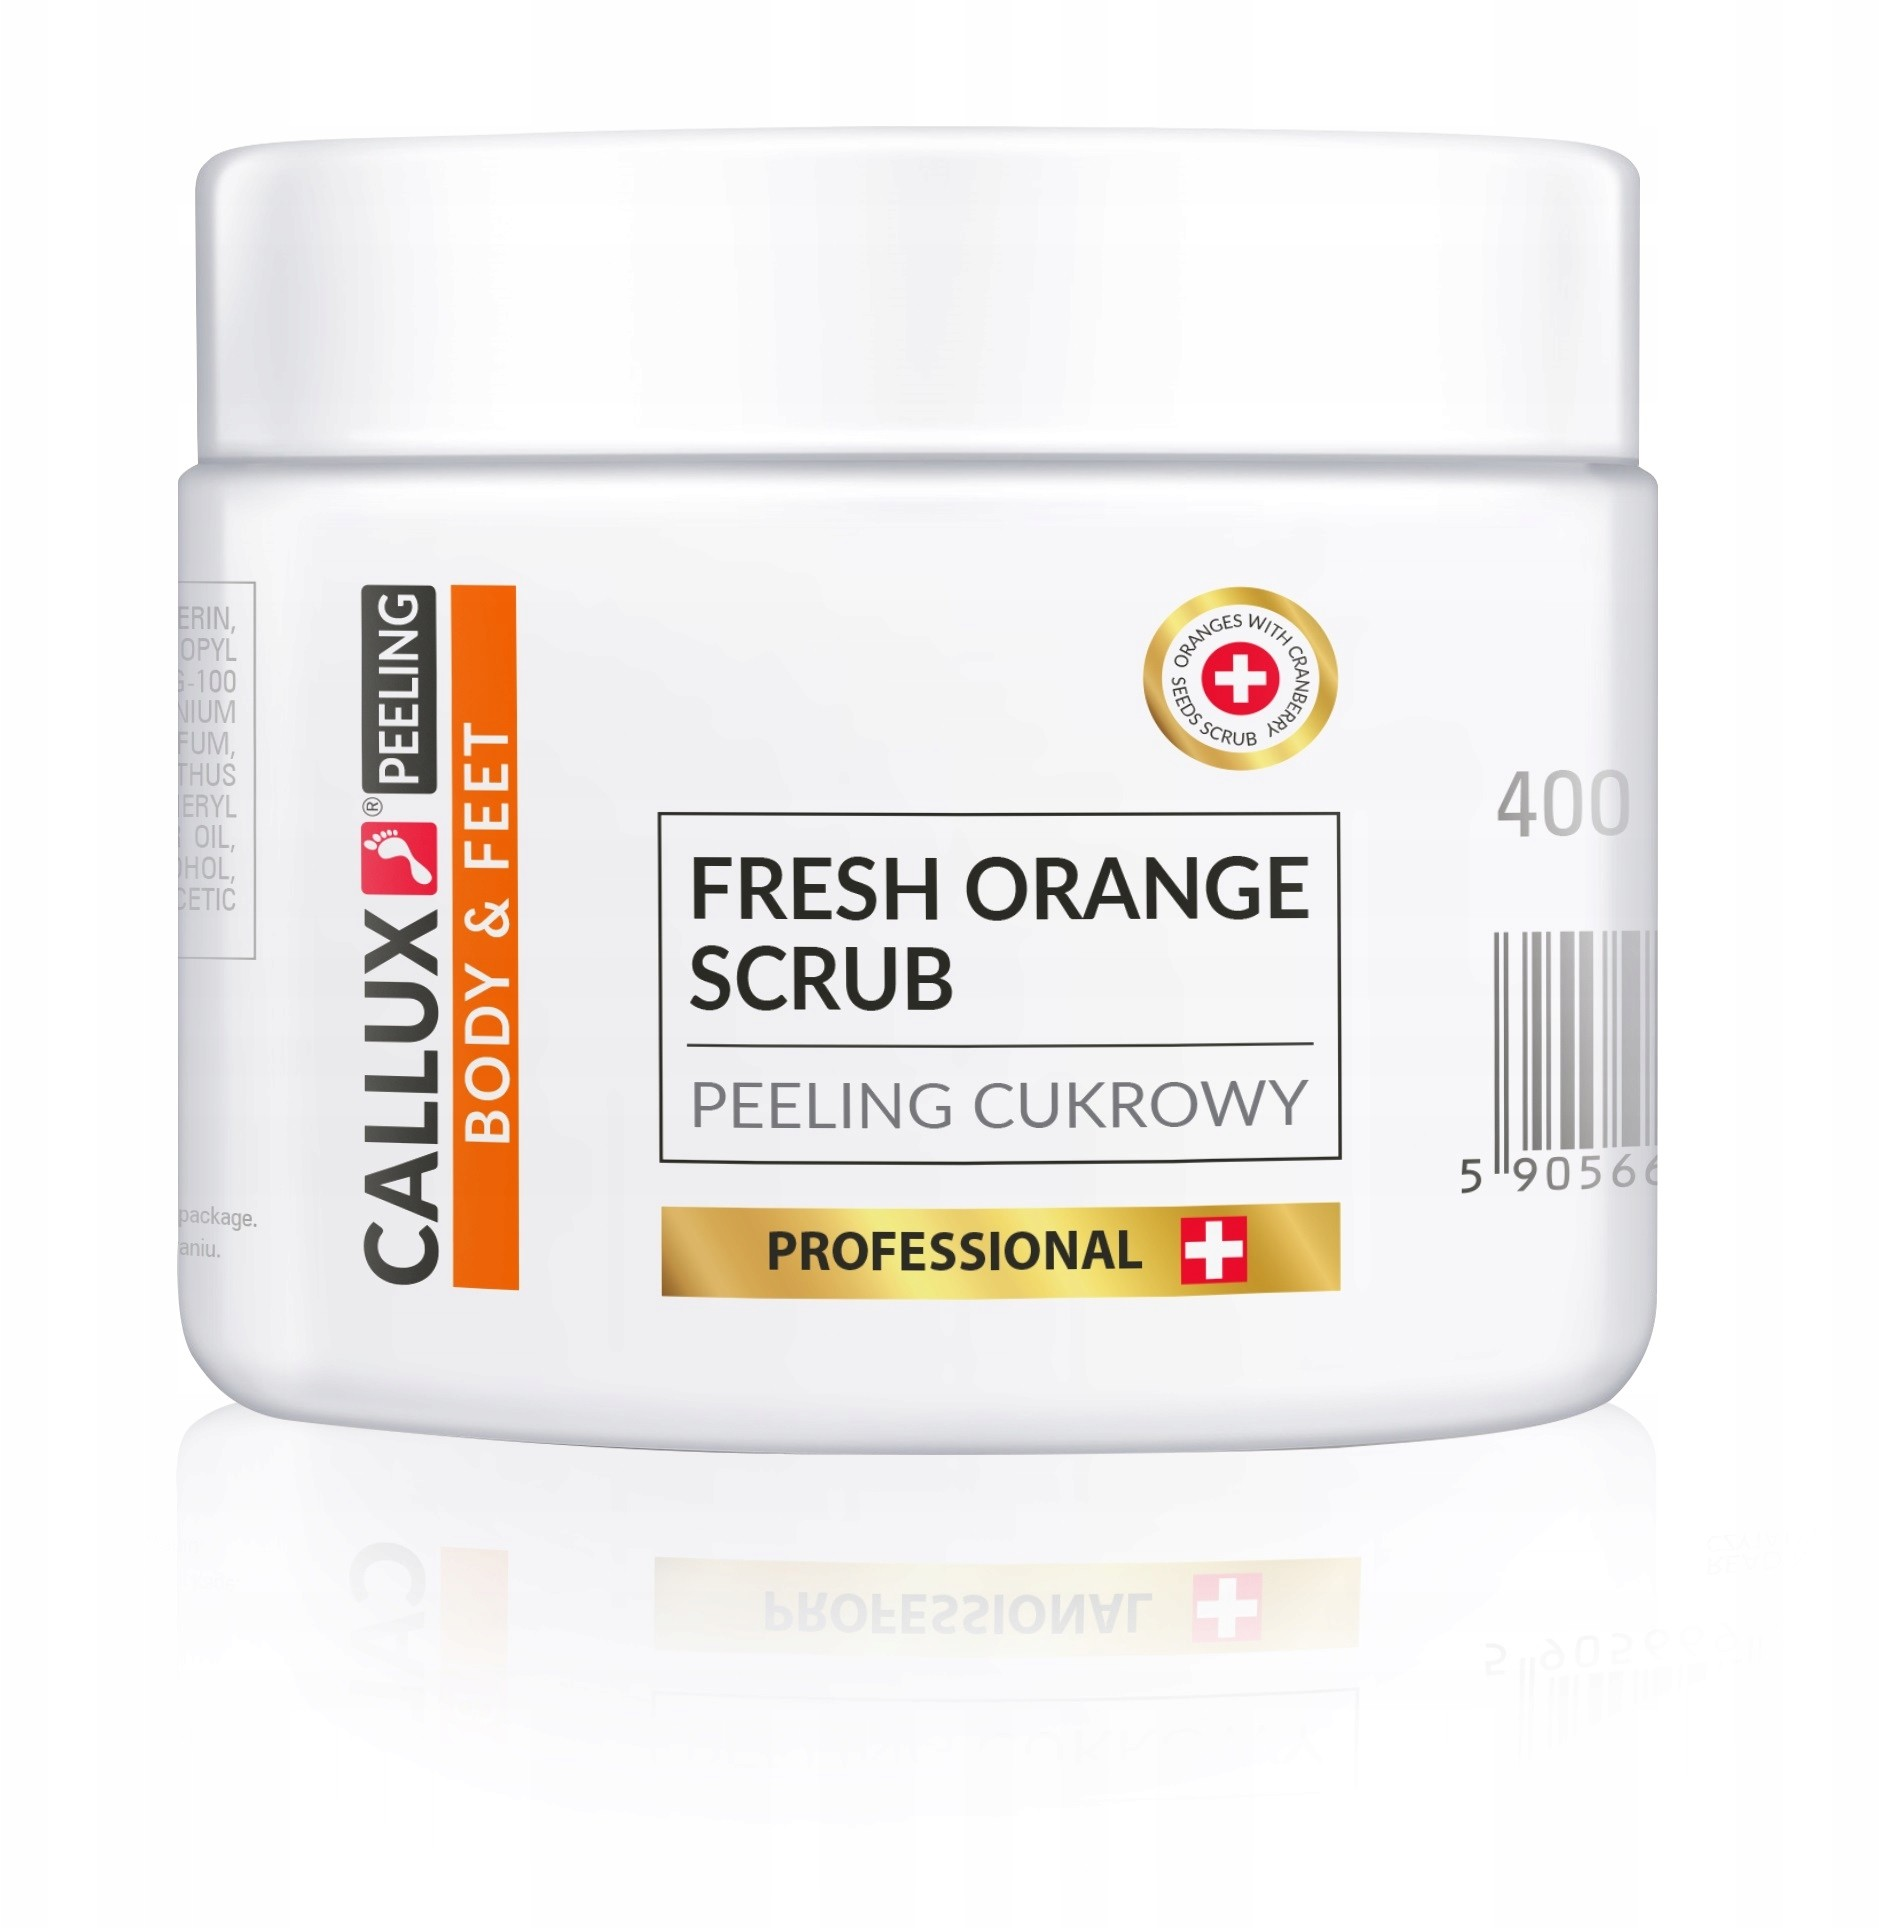 Callux Peeling cukrowy 400g Orange